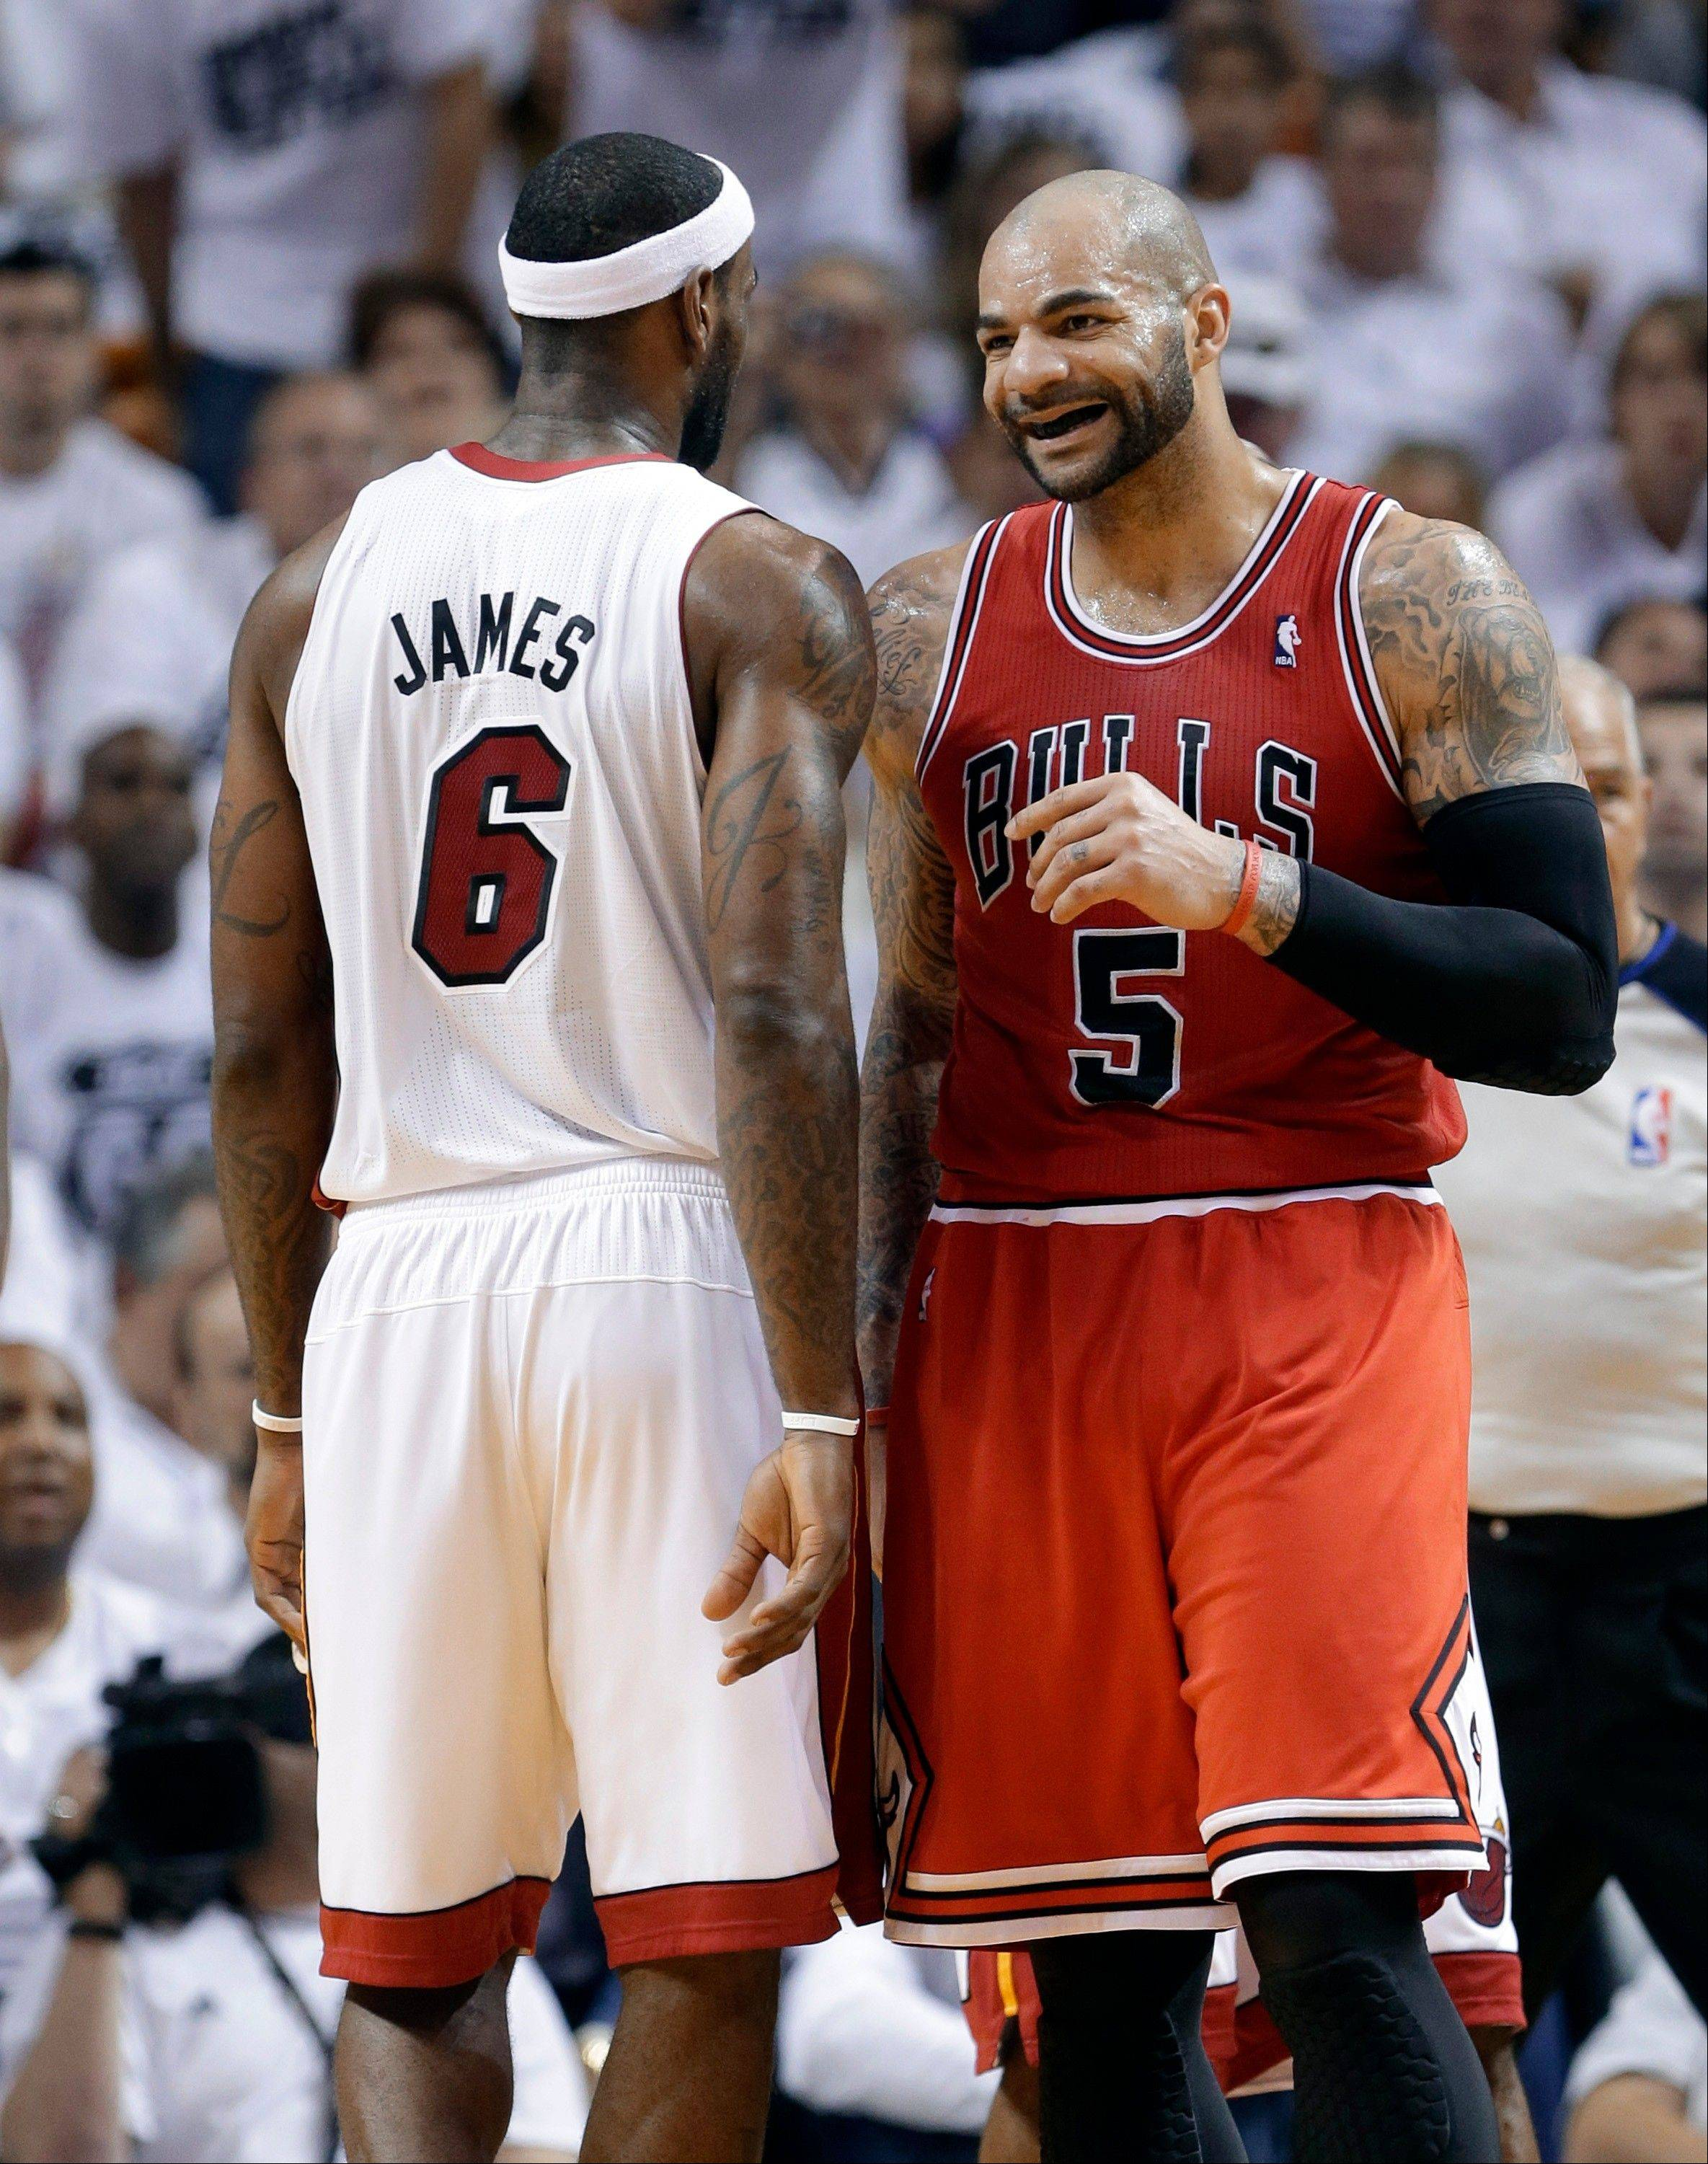 Miami Heat's LeBron James and the Bulls' Carlos Boozer stand on the court during the first half of Game 5 of their Eastern Conference semifinal Wednesday night.